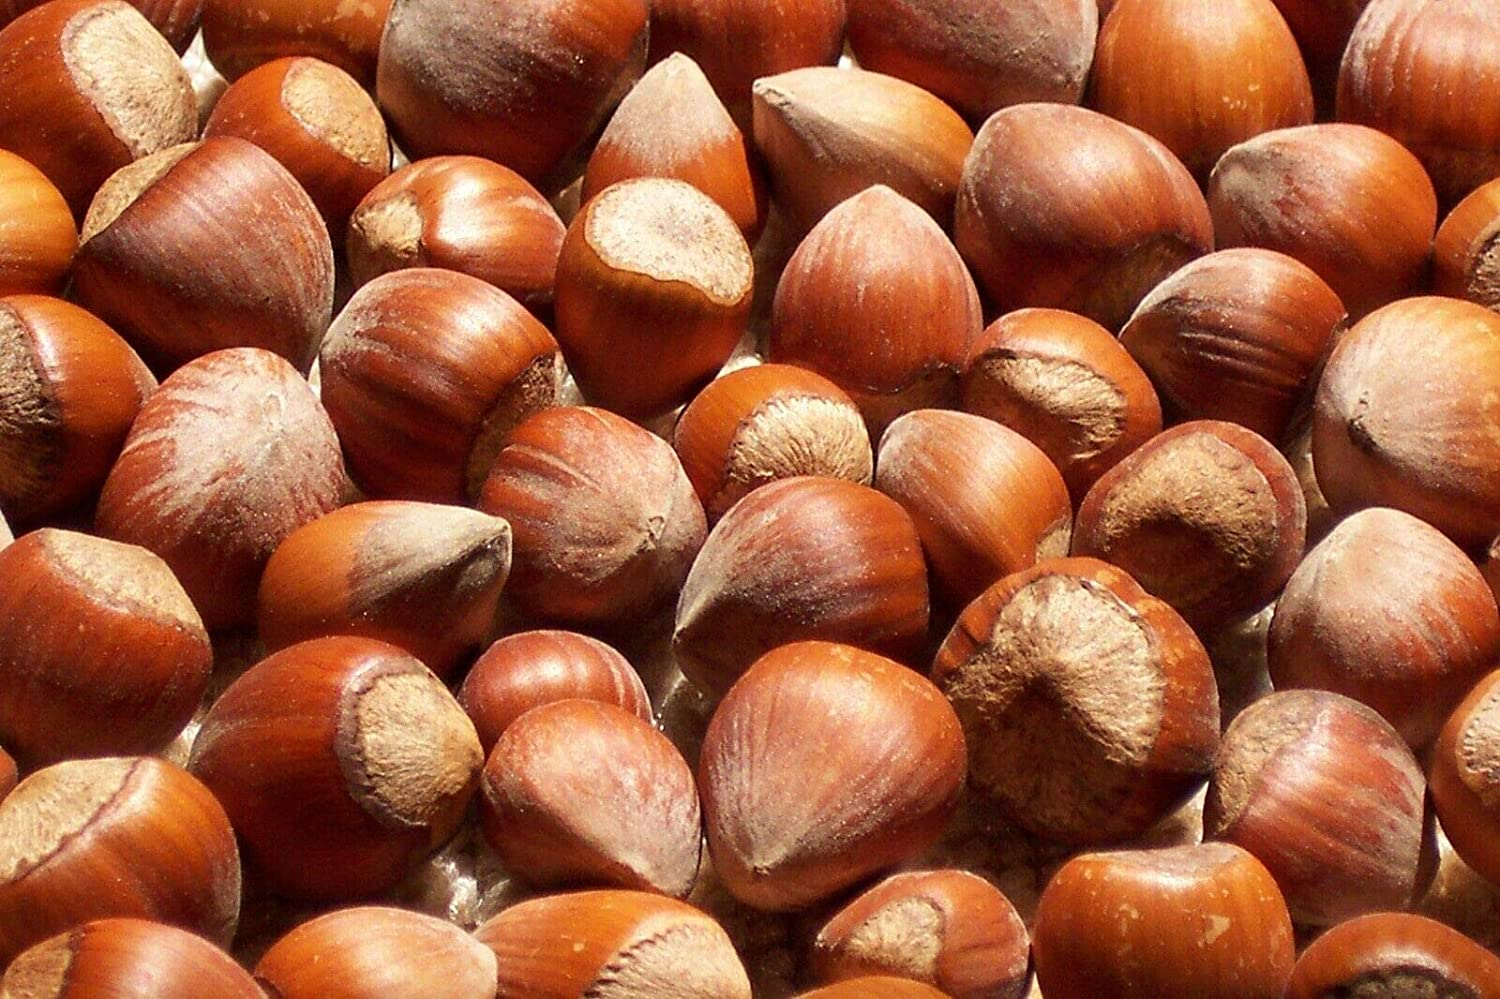 Freshly Harvested Max Fashion 71% OFF American Grown Raw Hazelnuts Fi In-shell whole